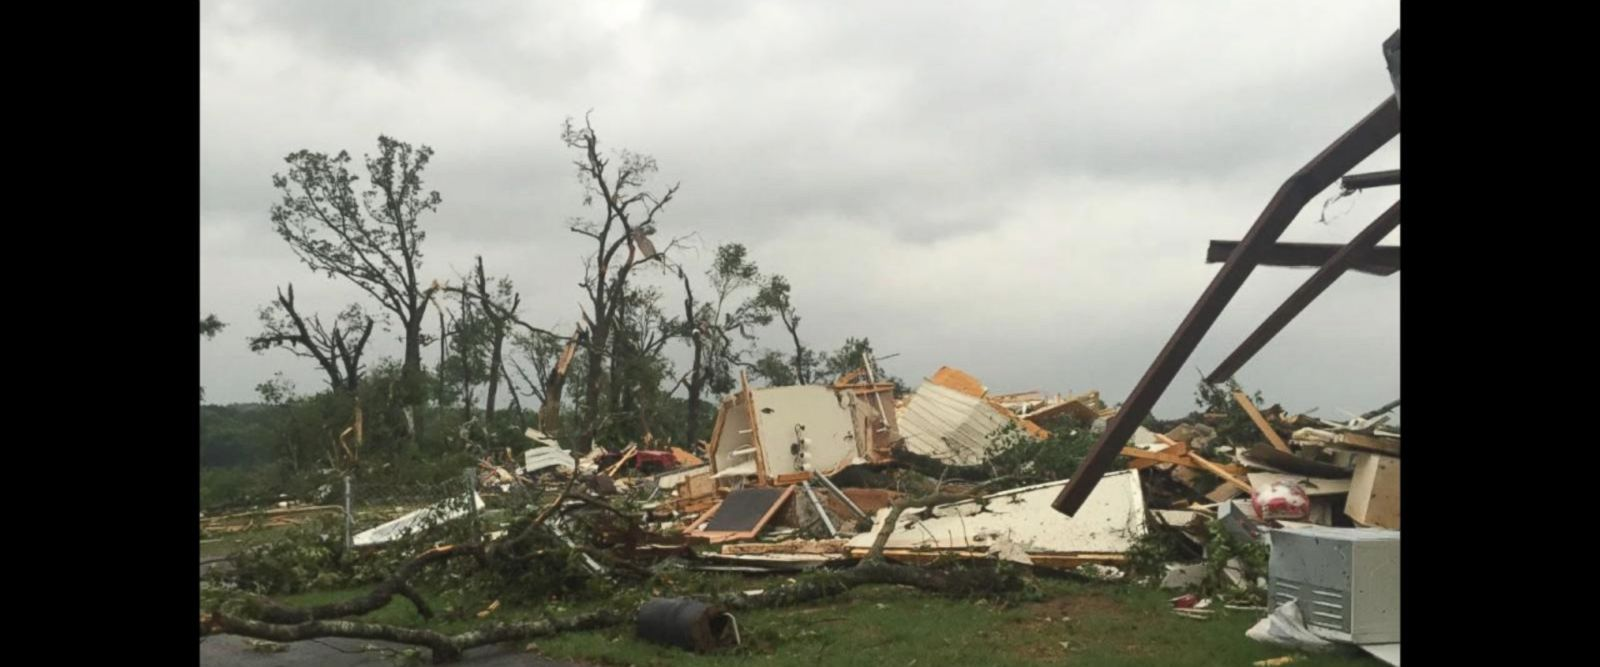 VIDEO: Massive twisters leave Texas homes destroyed